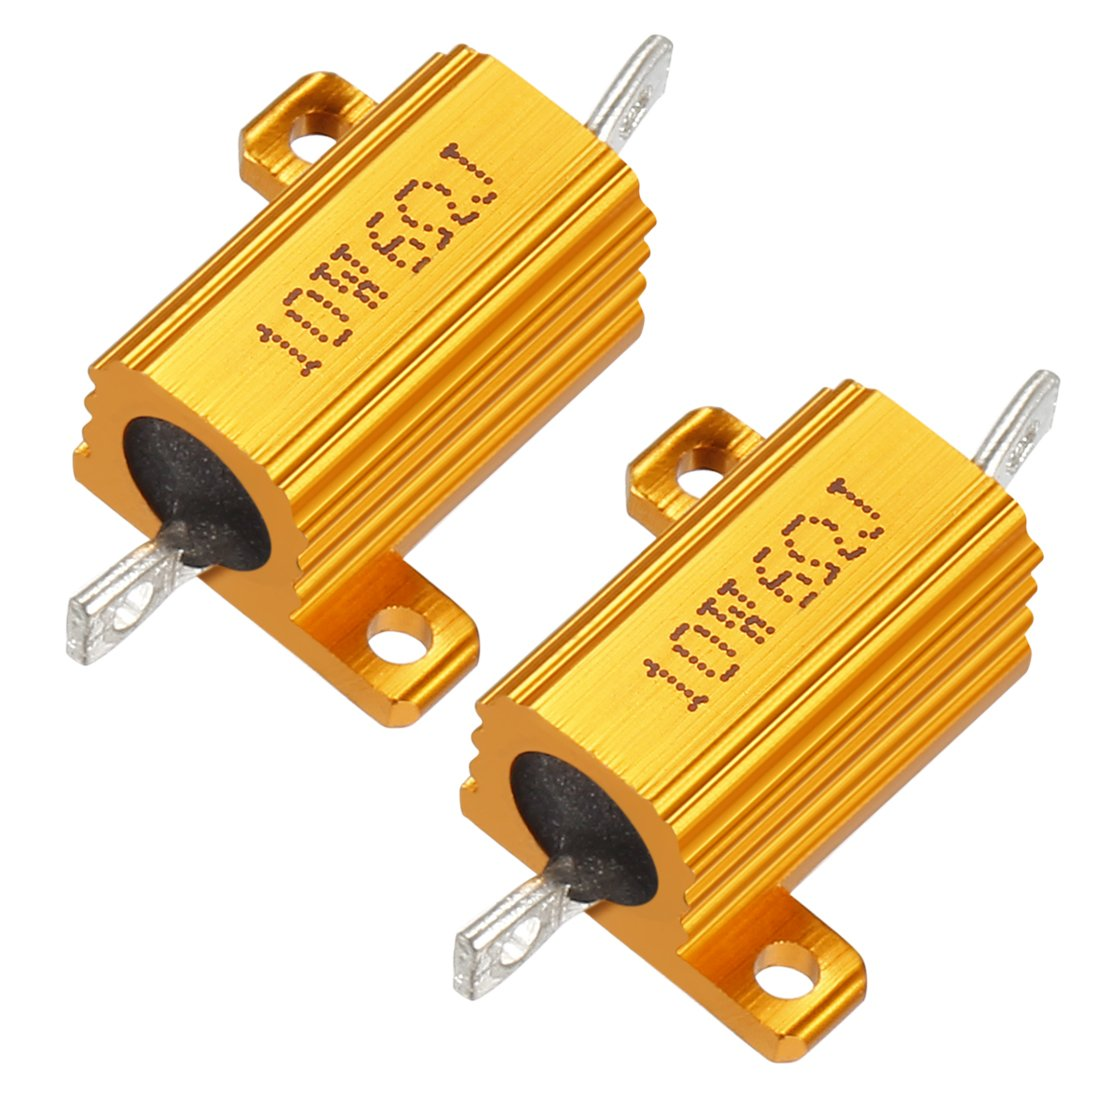 uxcell 2 Pcs Aluminum Case Resistor 10W 6 Ohm Wirewound for LED Converter with Rod Post 10W6RJ